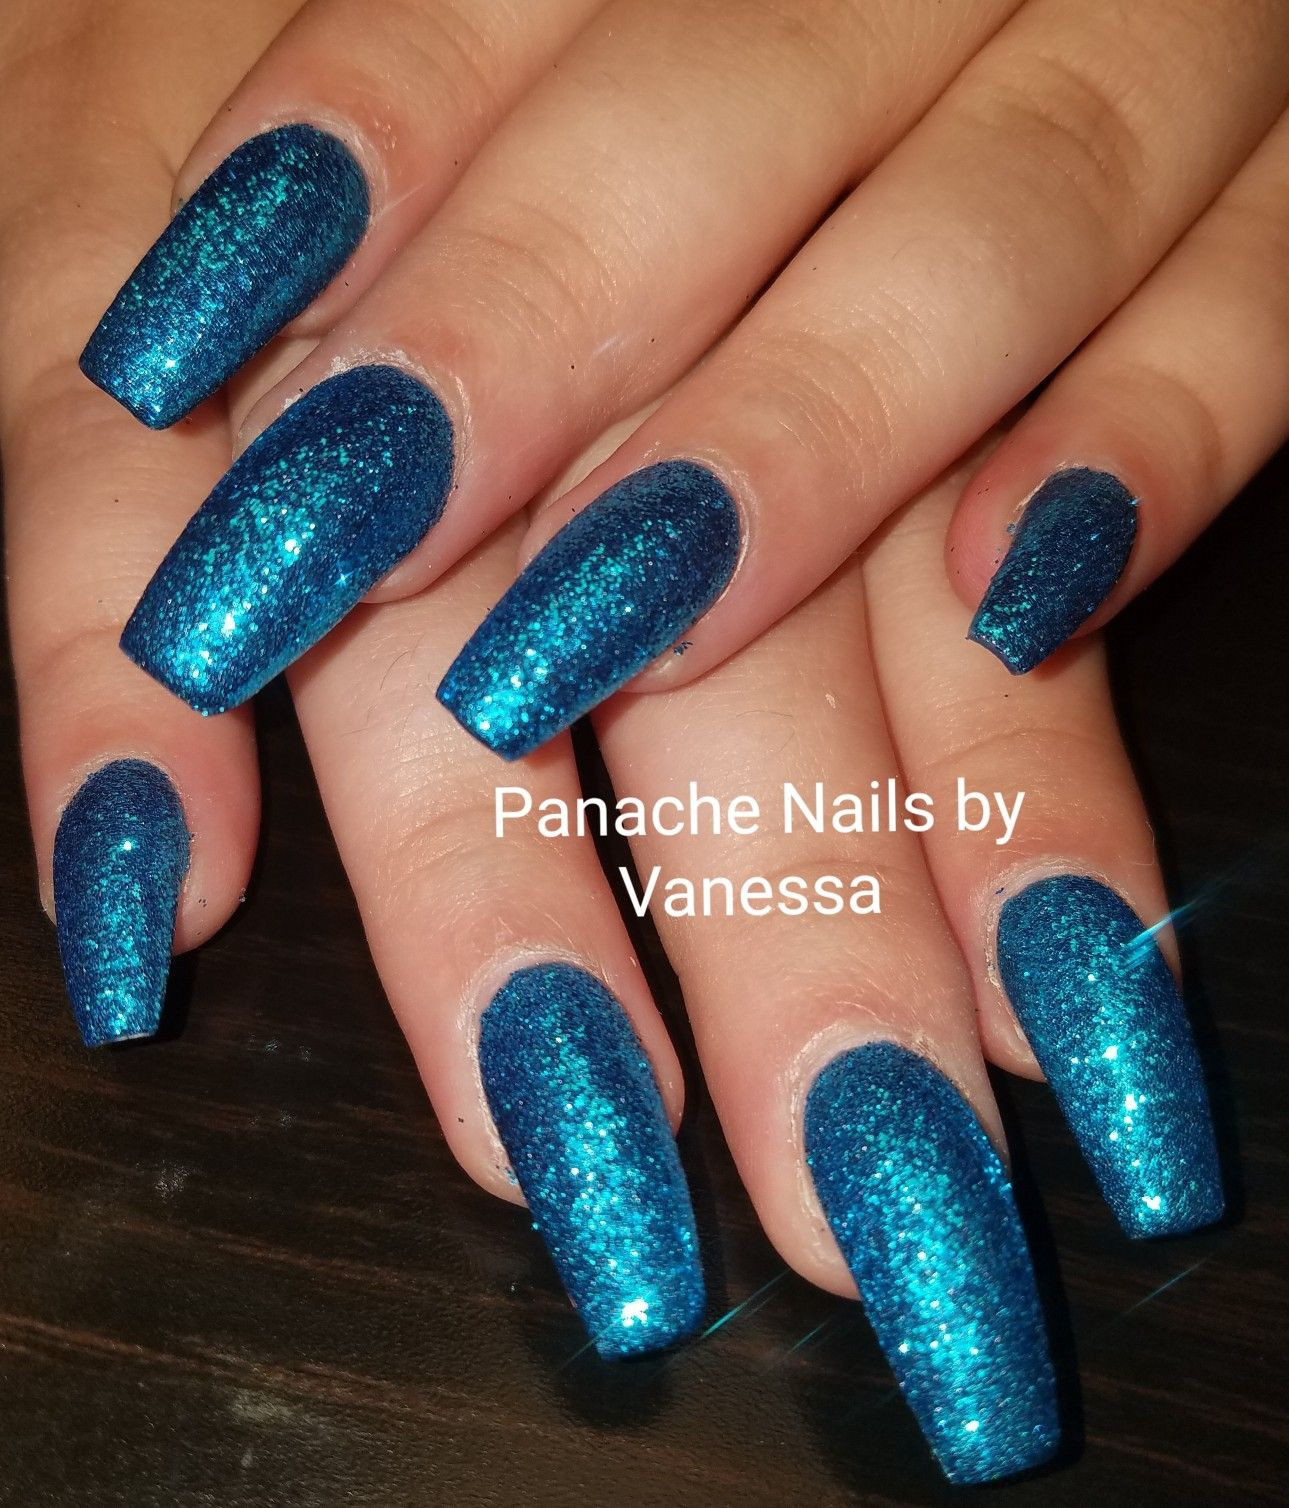 How To Do Glitter Acrylic Nails  Image by Kathy J on nails